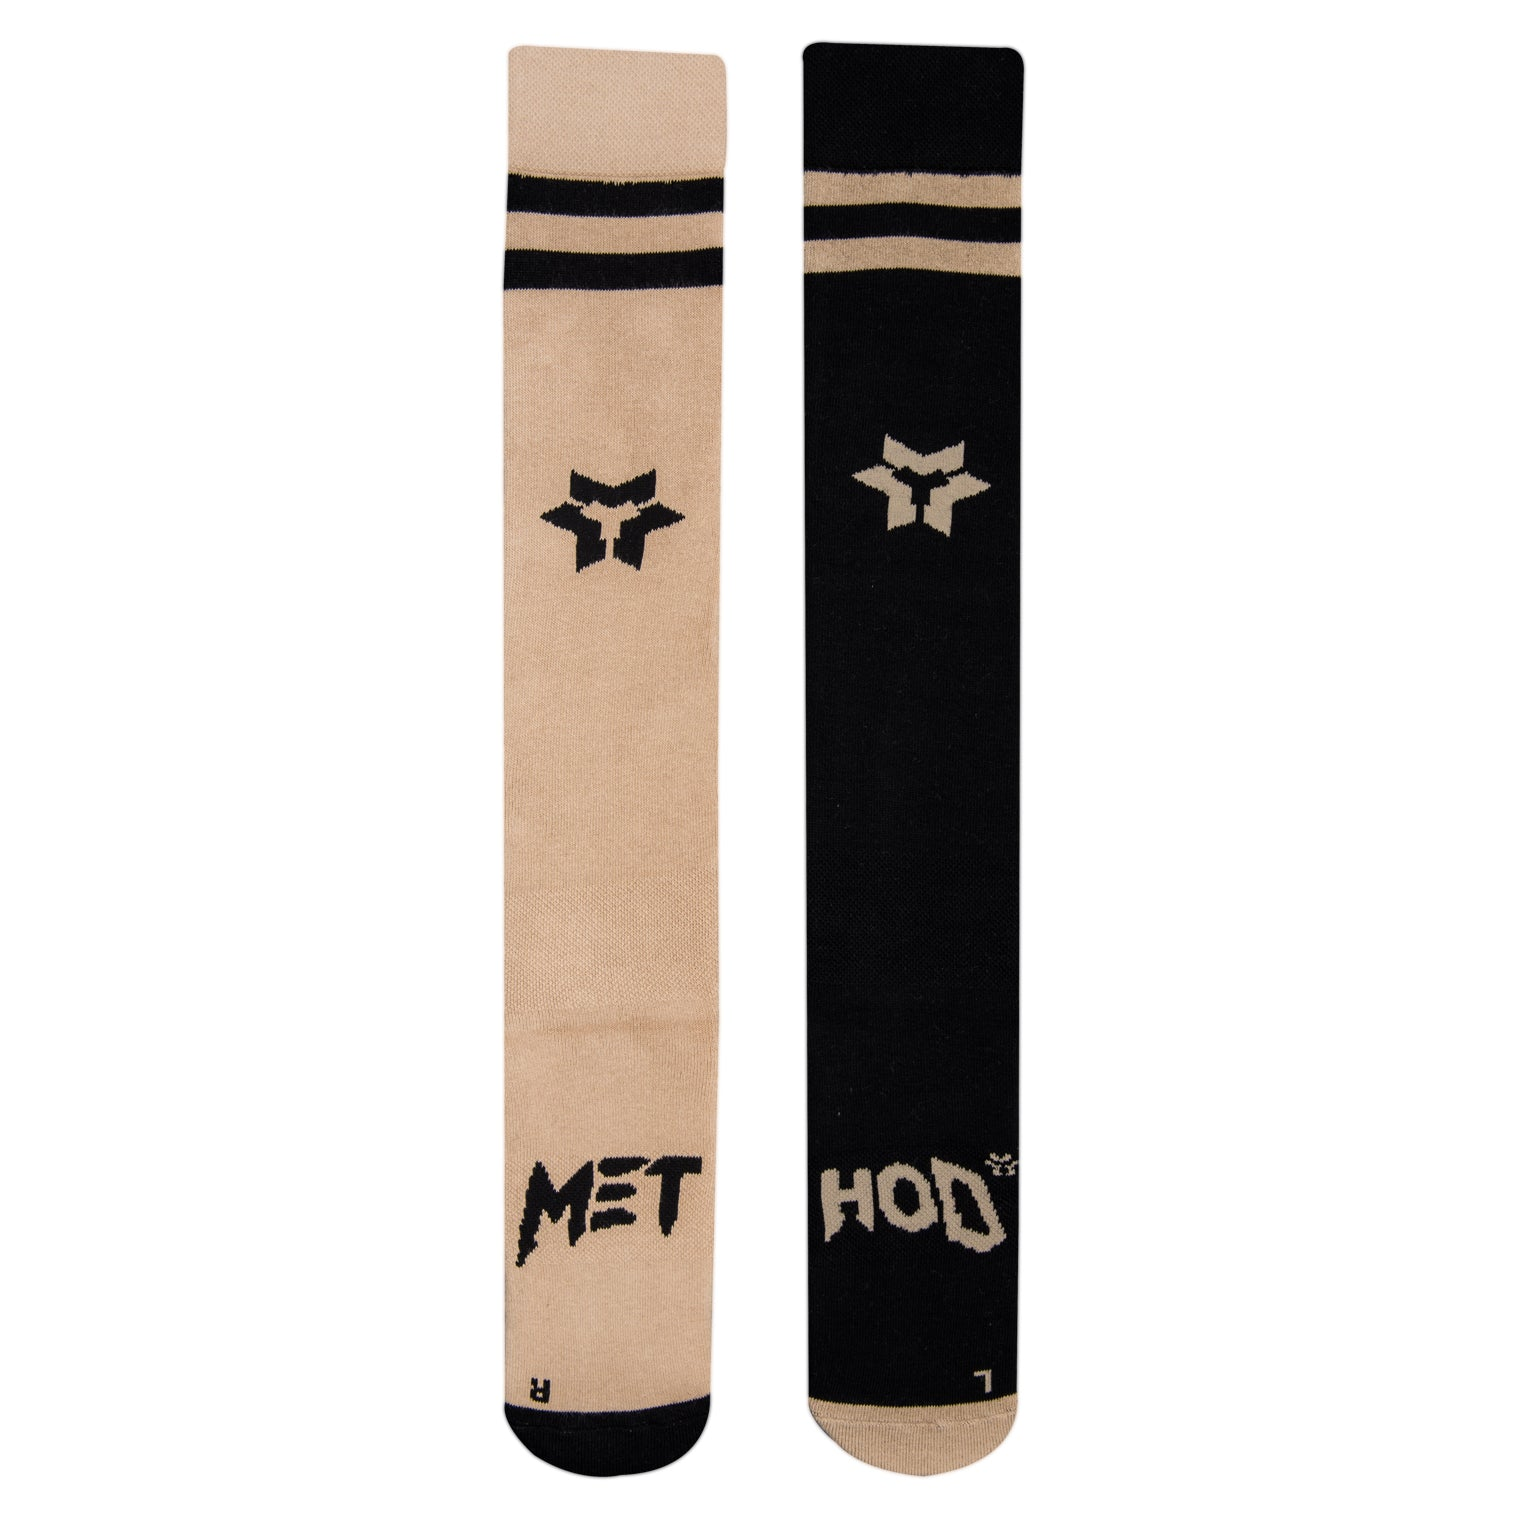 Method x Stinky Snowboard Socks